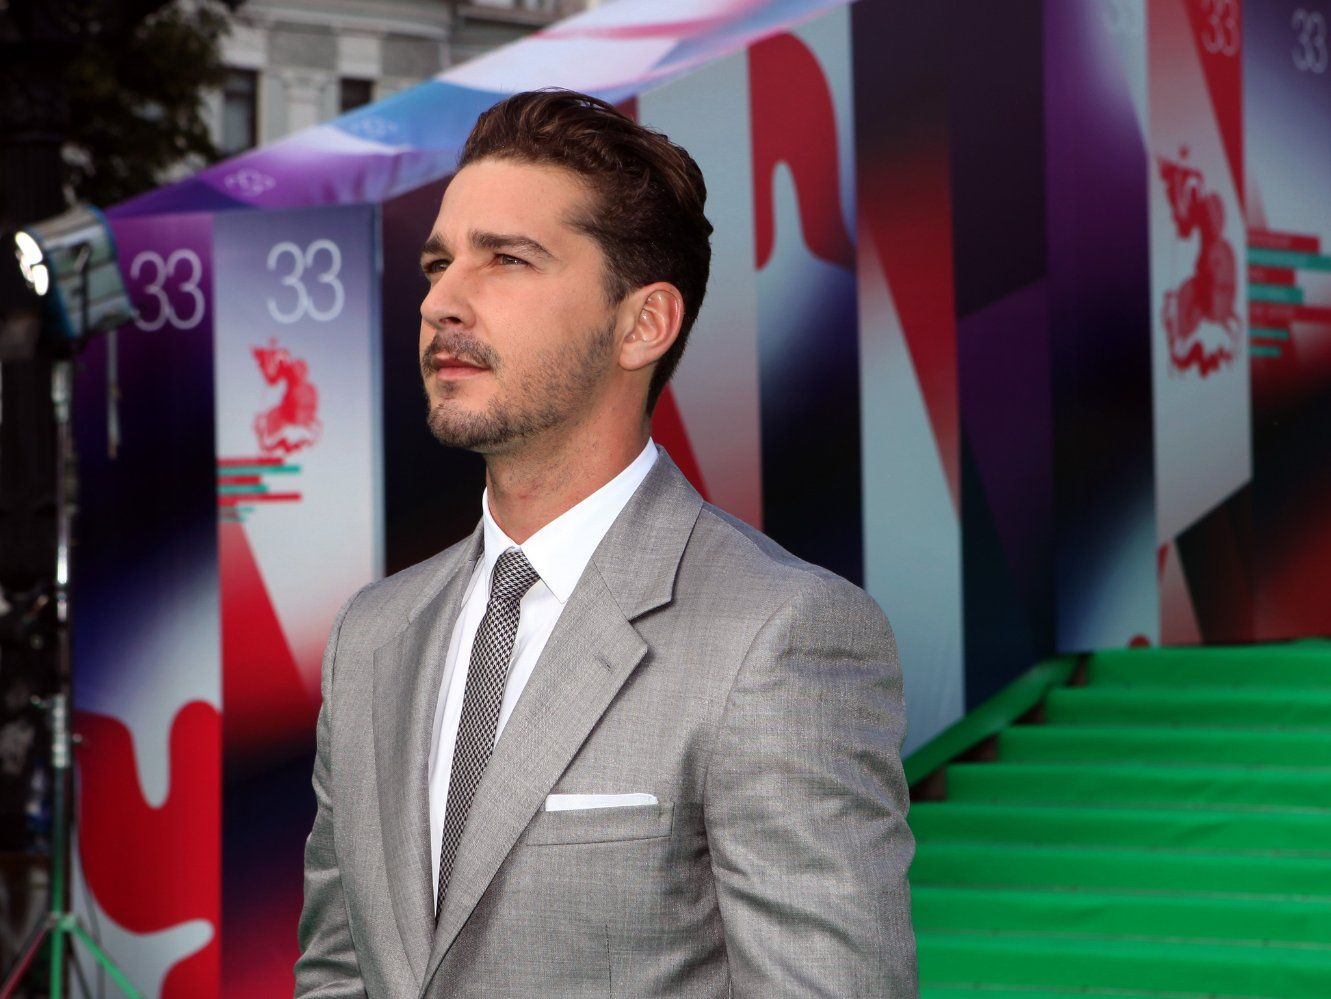 Shia LaBeouf on IMDb Movies, TV, Celebs, and more